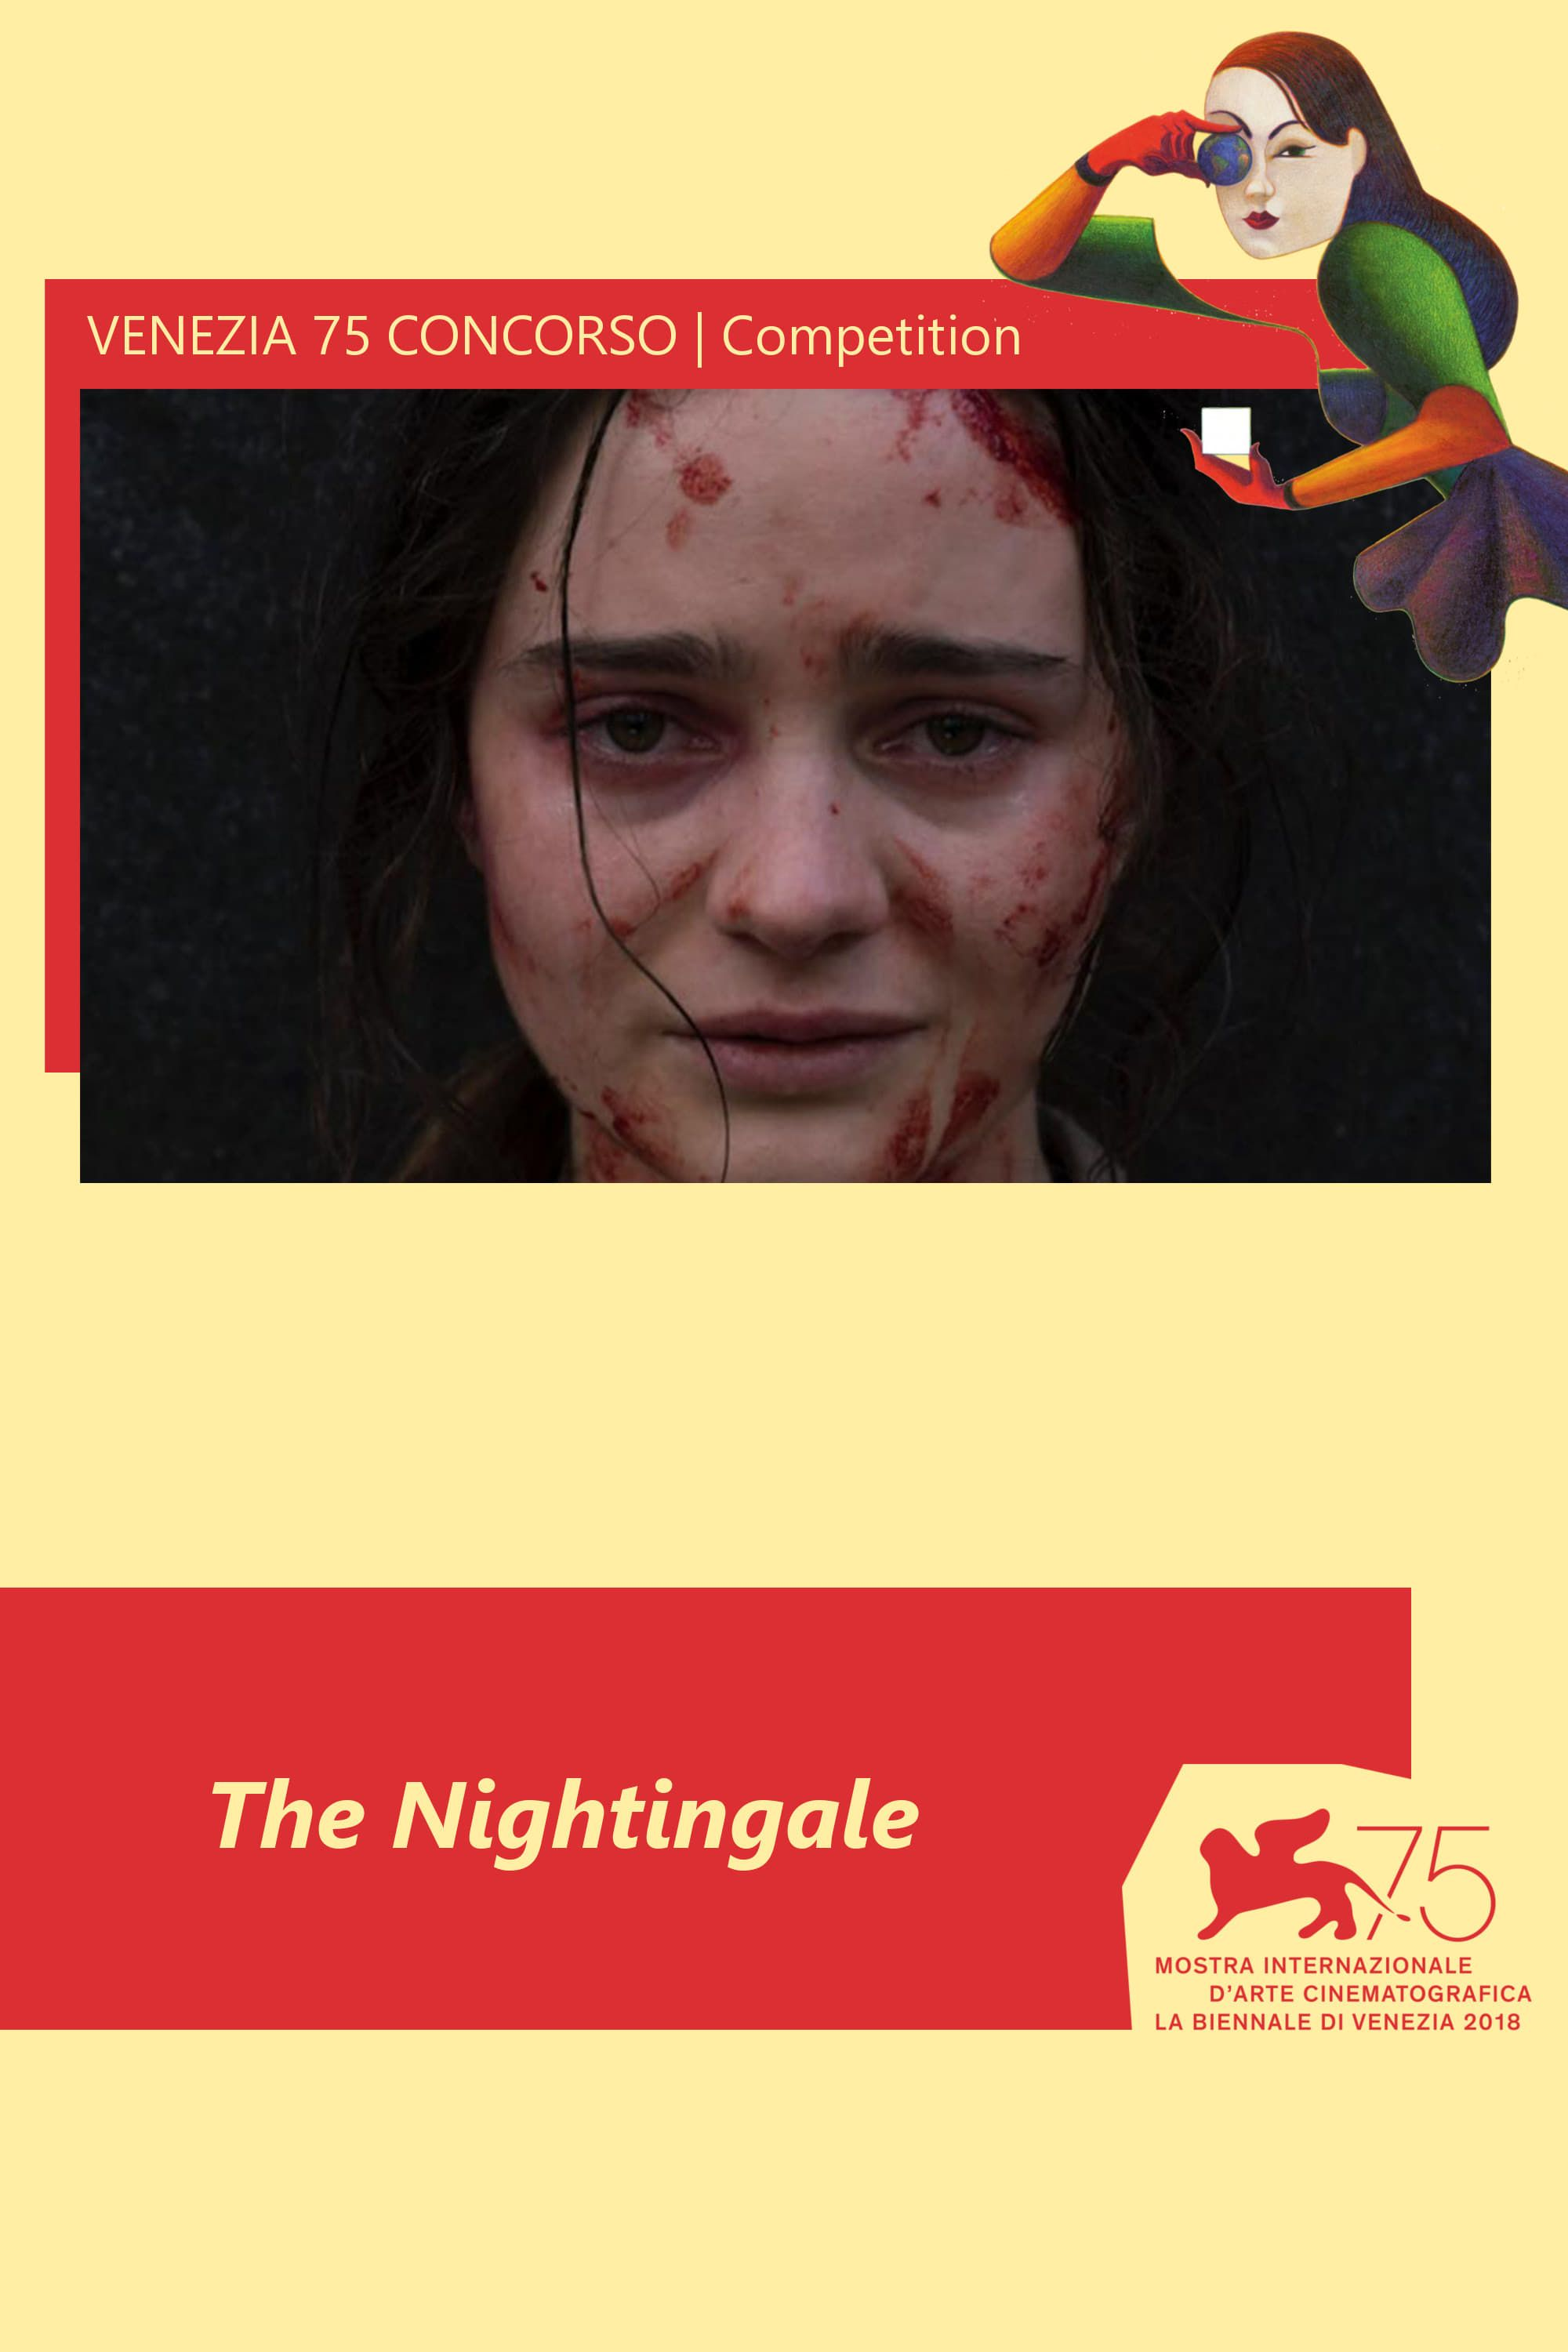 Arte Replay Film Portrait De Femme The Nightingale FULL MOVIE Streaming Online In Hd 720p